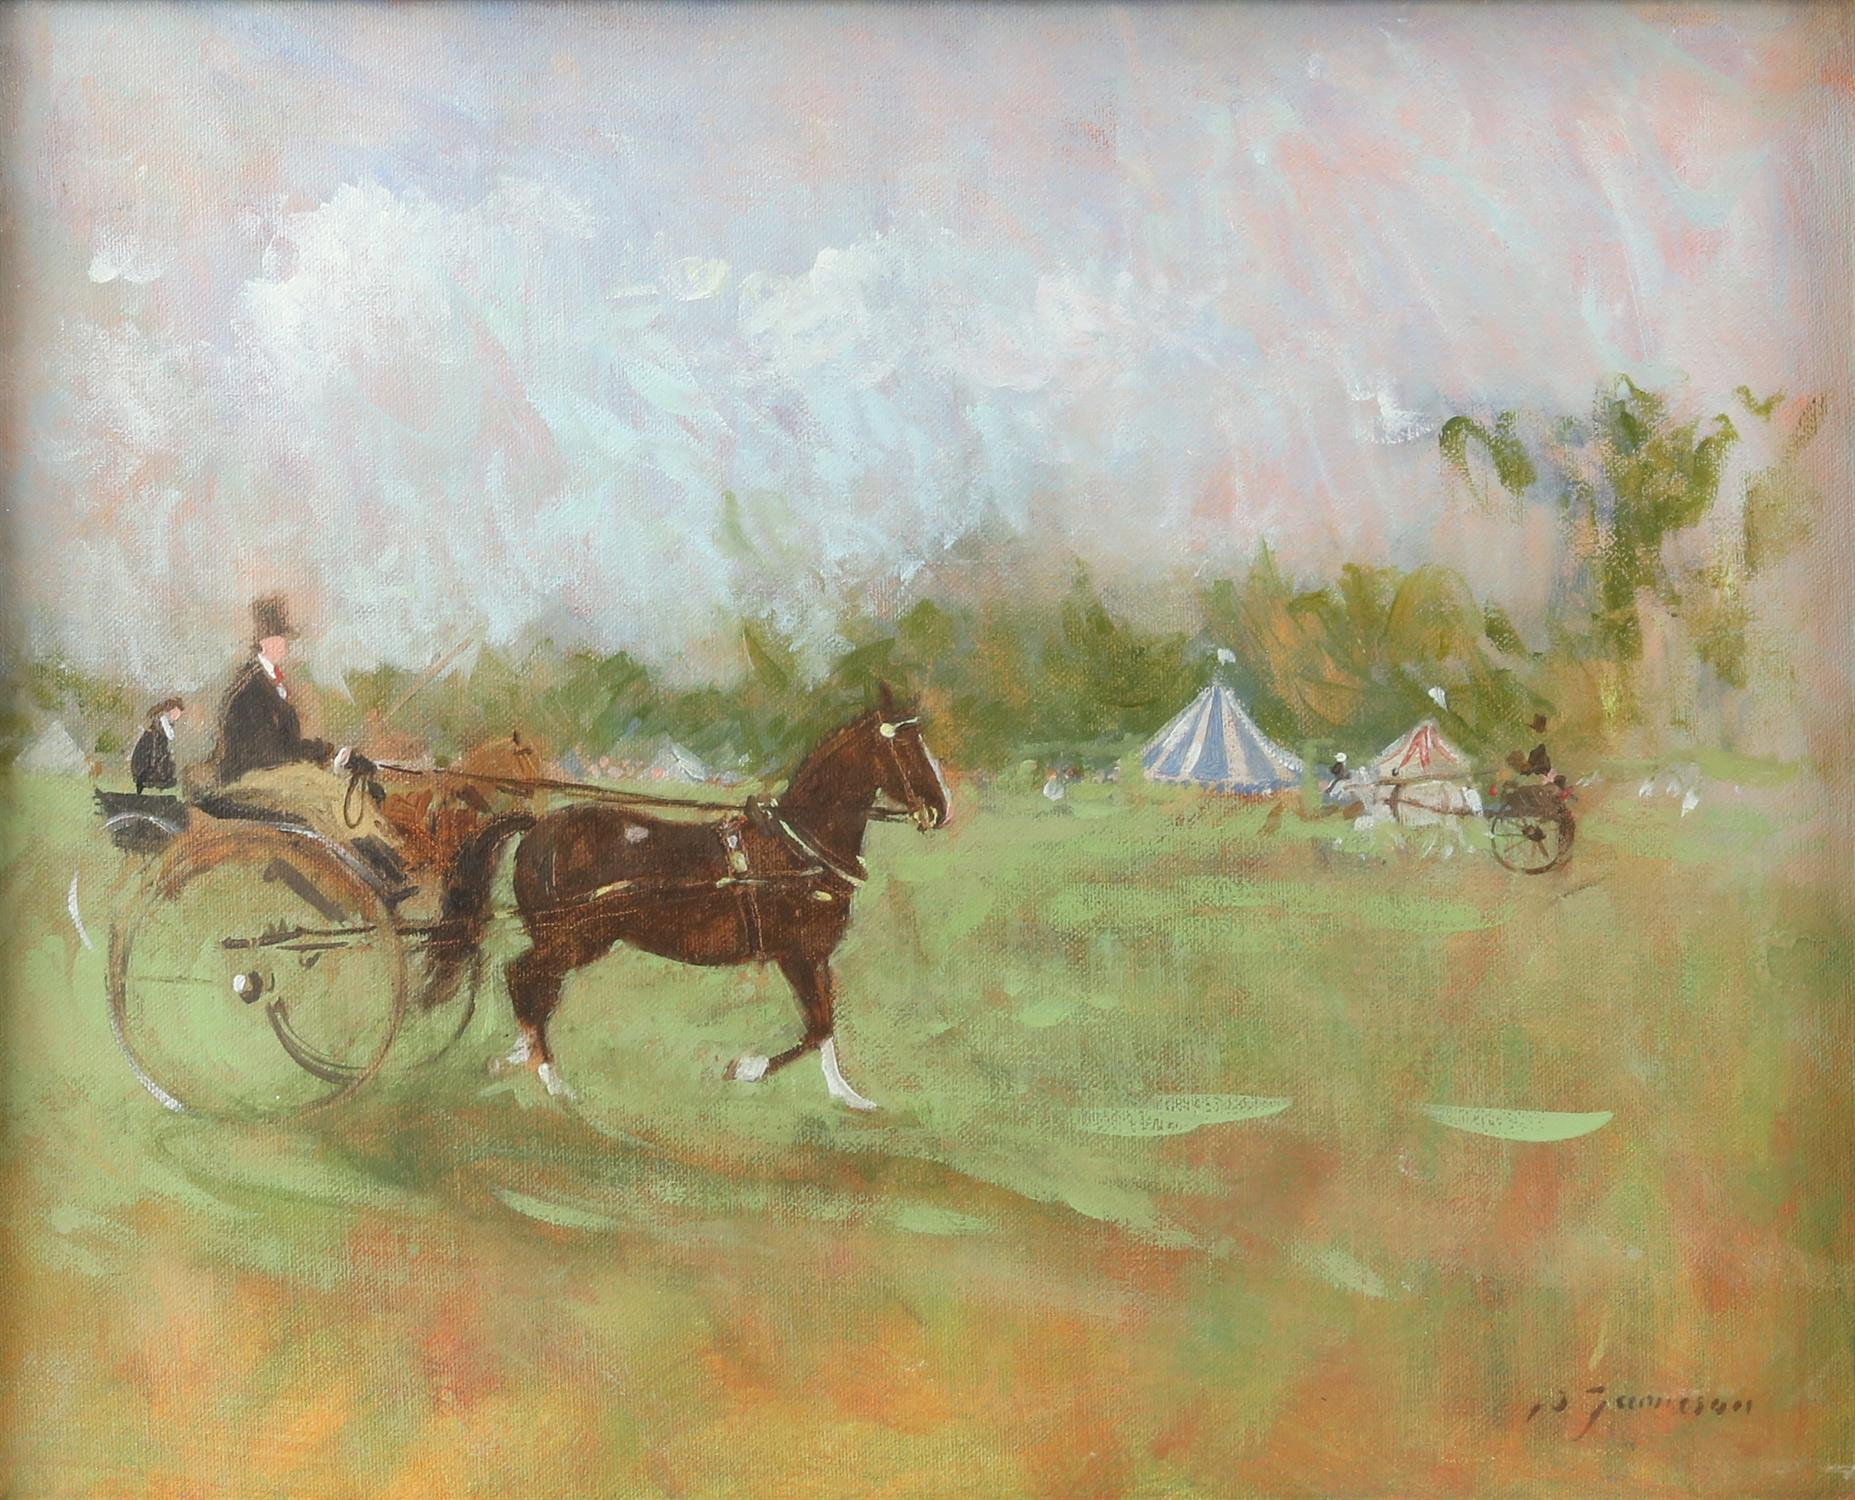 Peter Jamieson (British, b. 1945), 'Gig at the Aylesham Show', signed, oil on board, 29cm x 36.